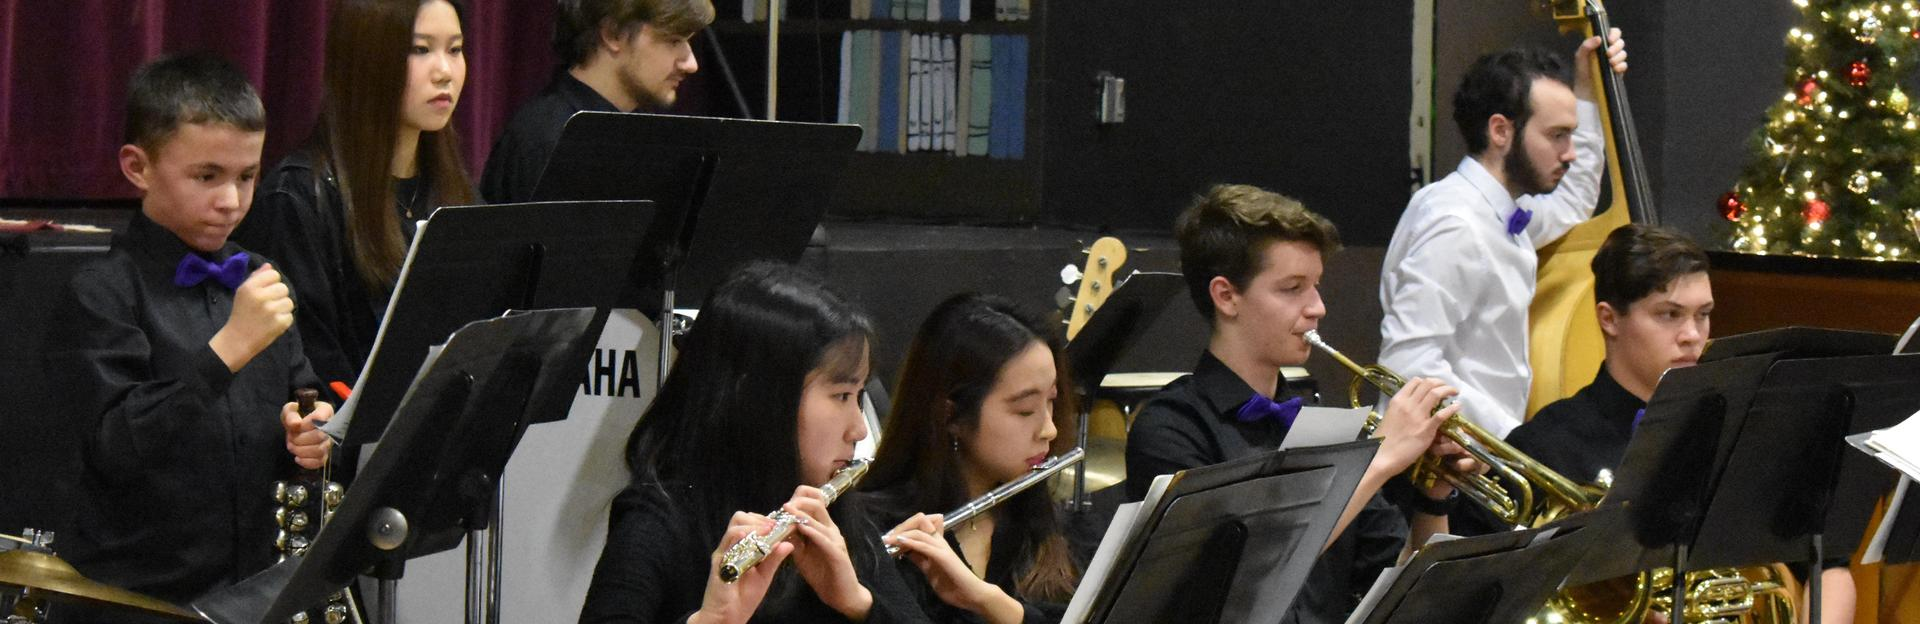 HS band performing at Christmas 2018 concert